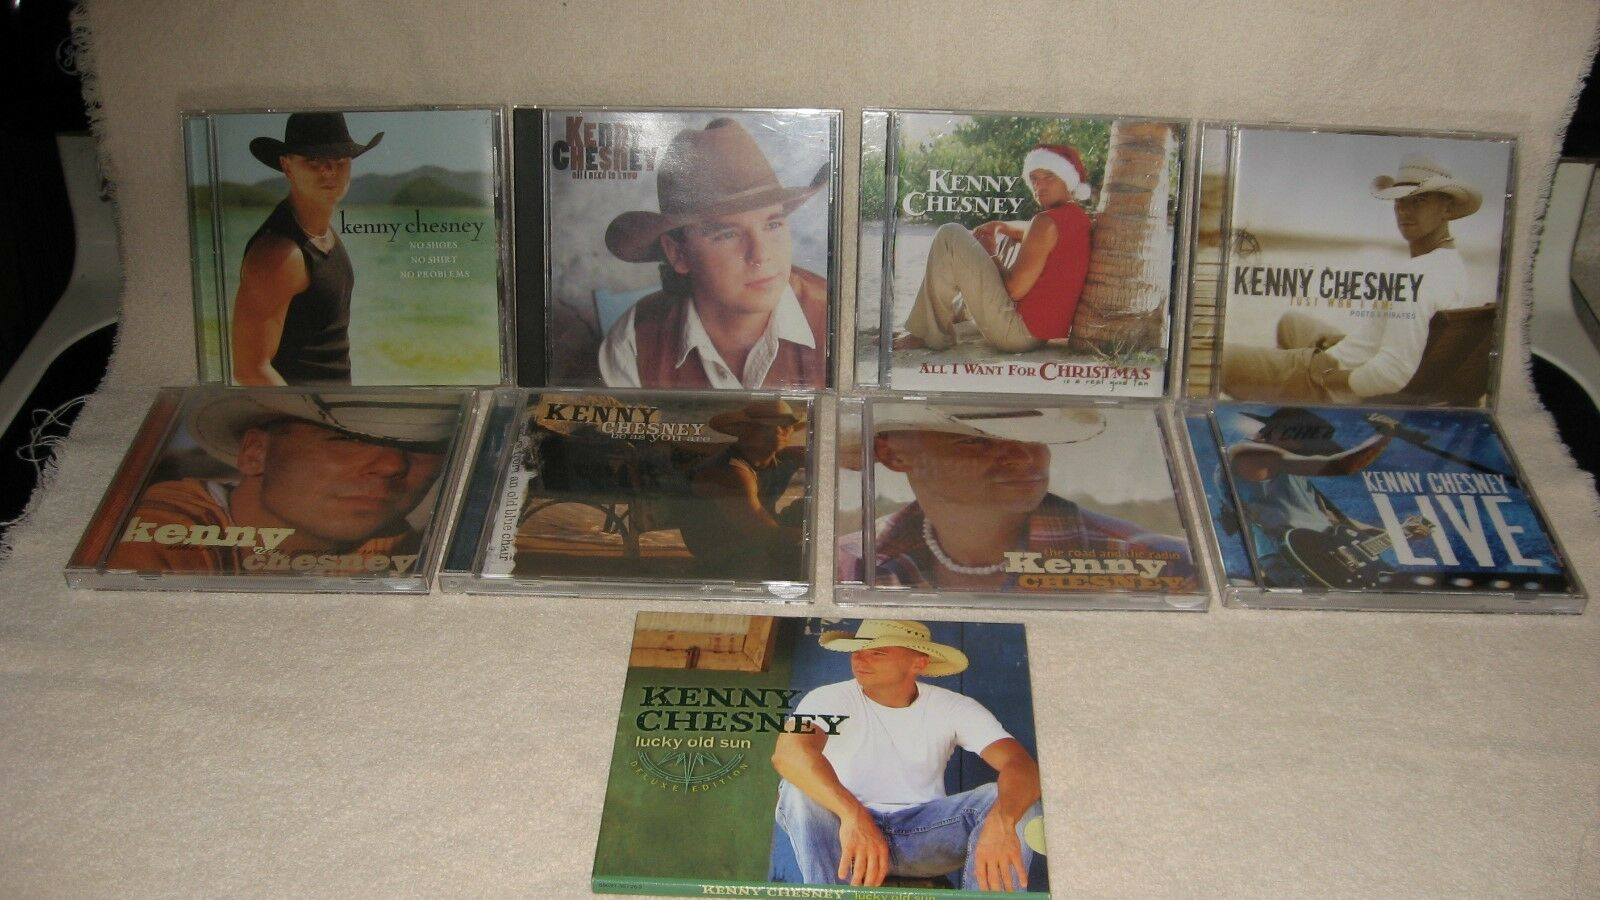 LOT OF 9 Kenny Chesney Cds Country - $29.99 | PicClick